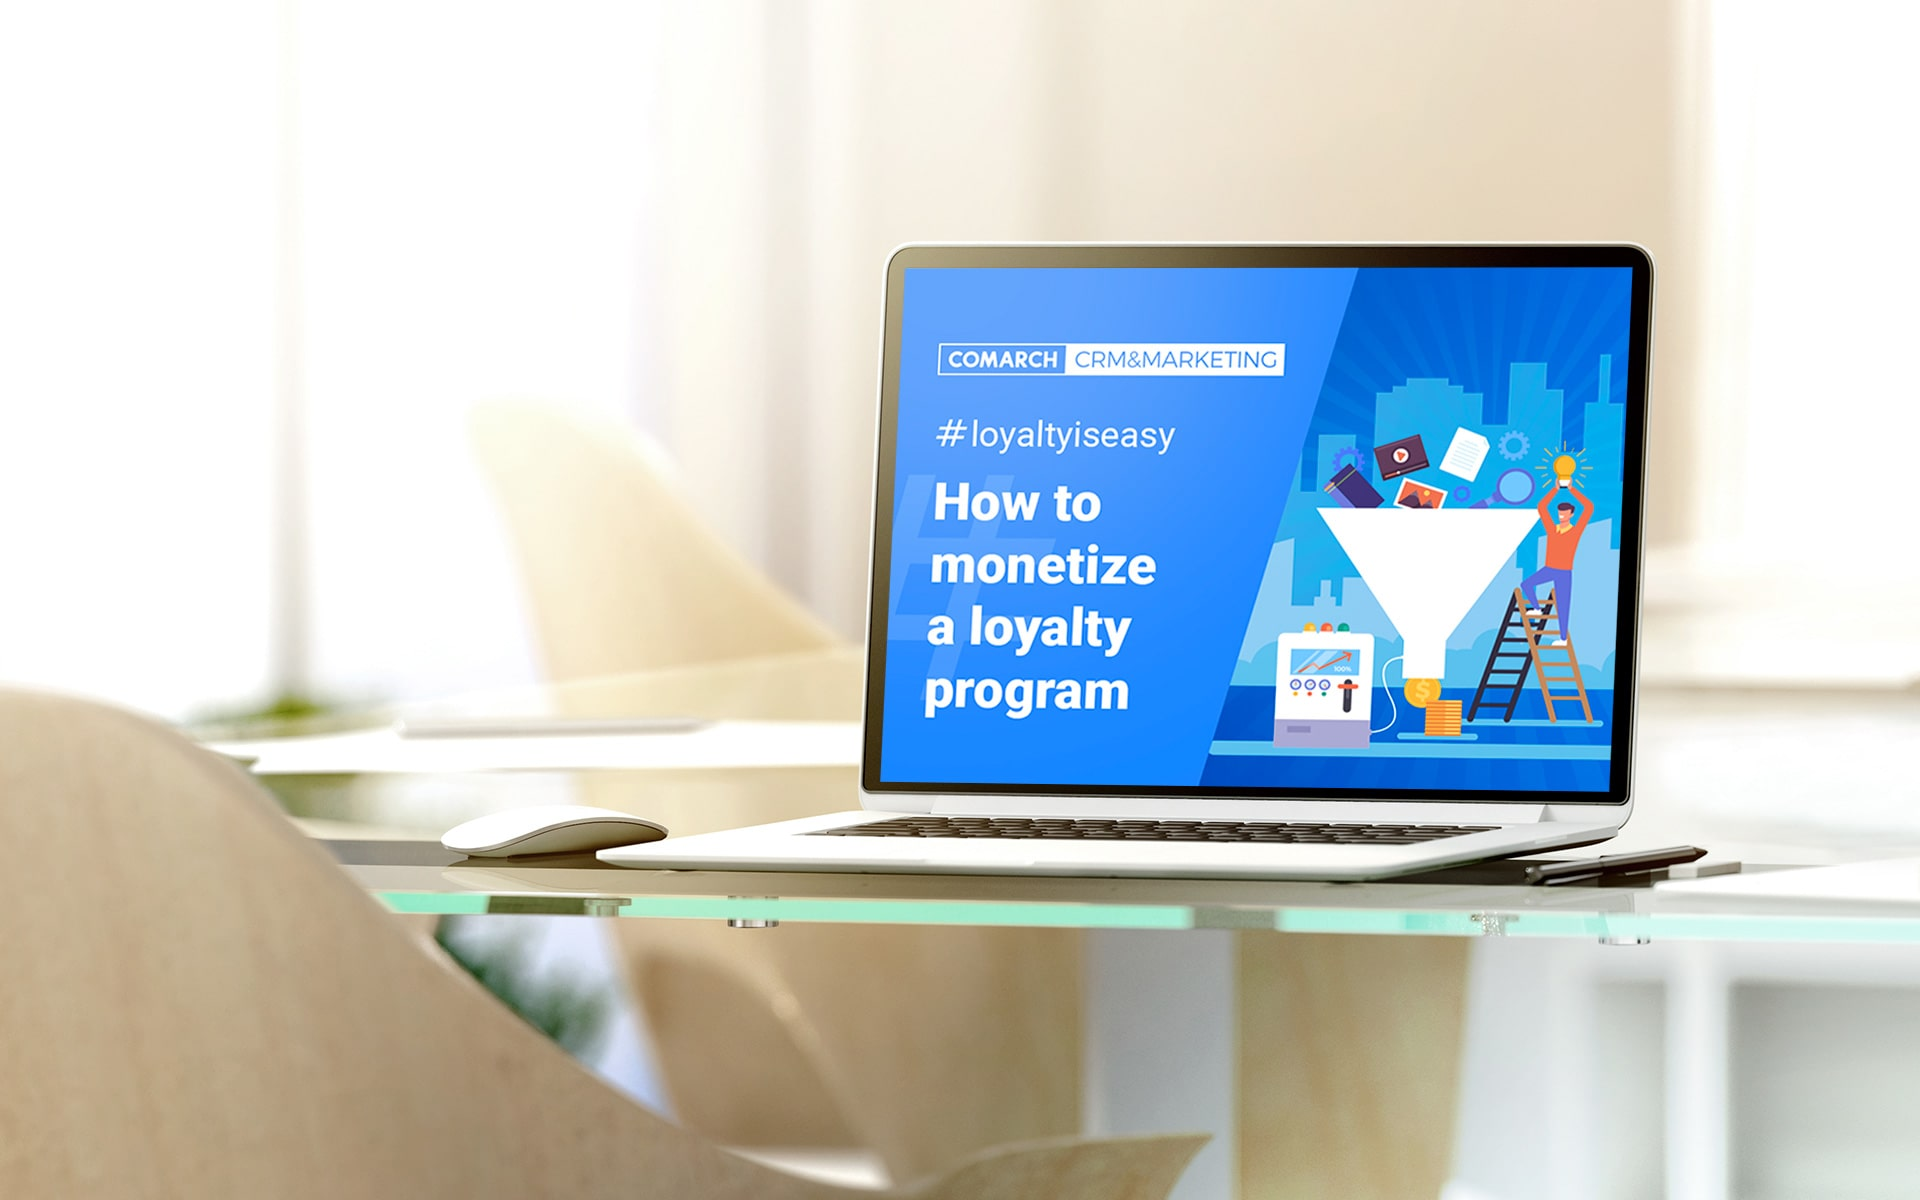 How to monetize a loyalty program